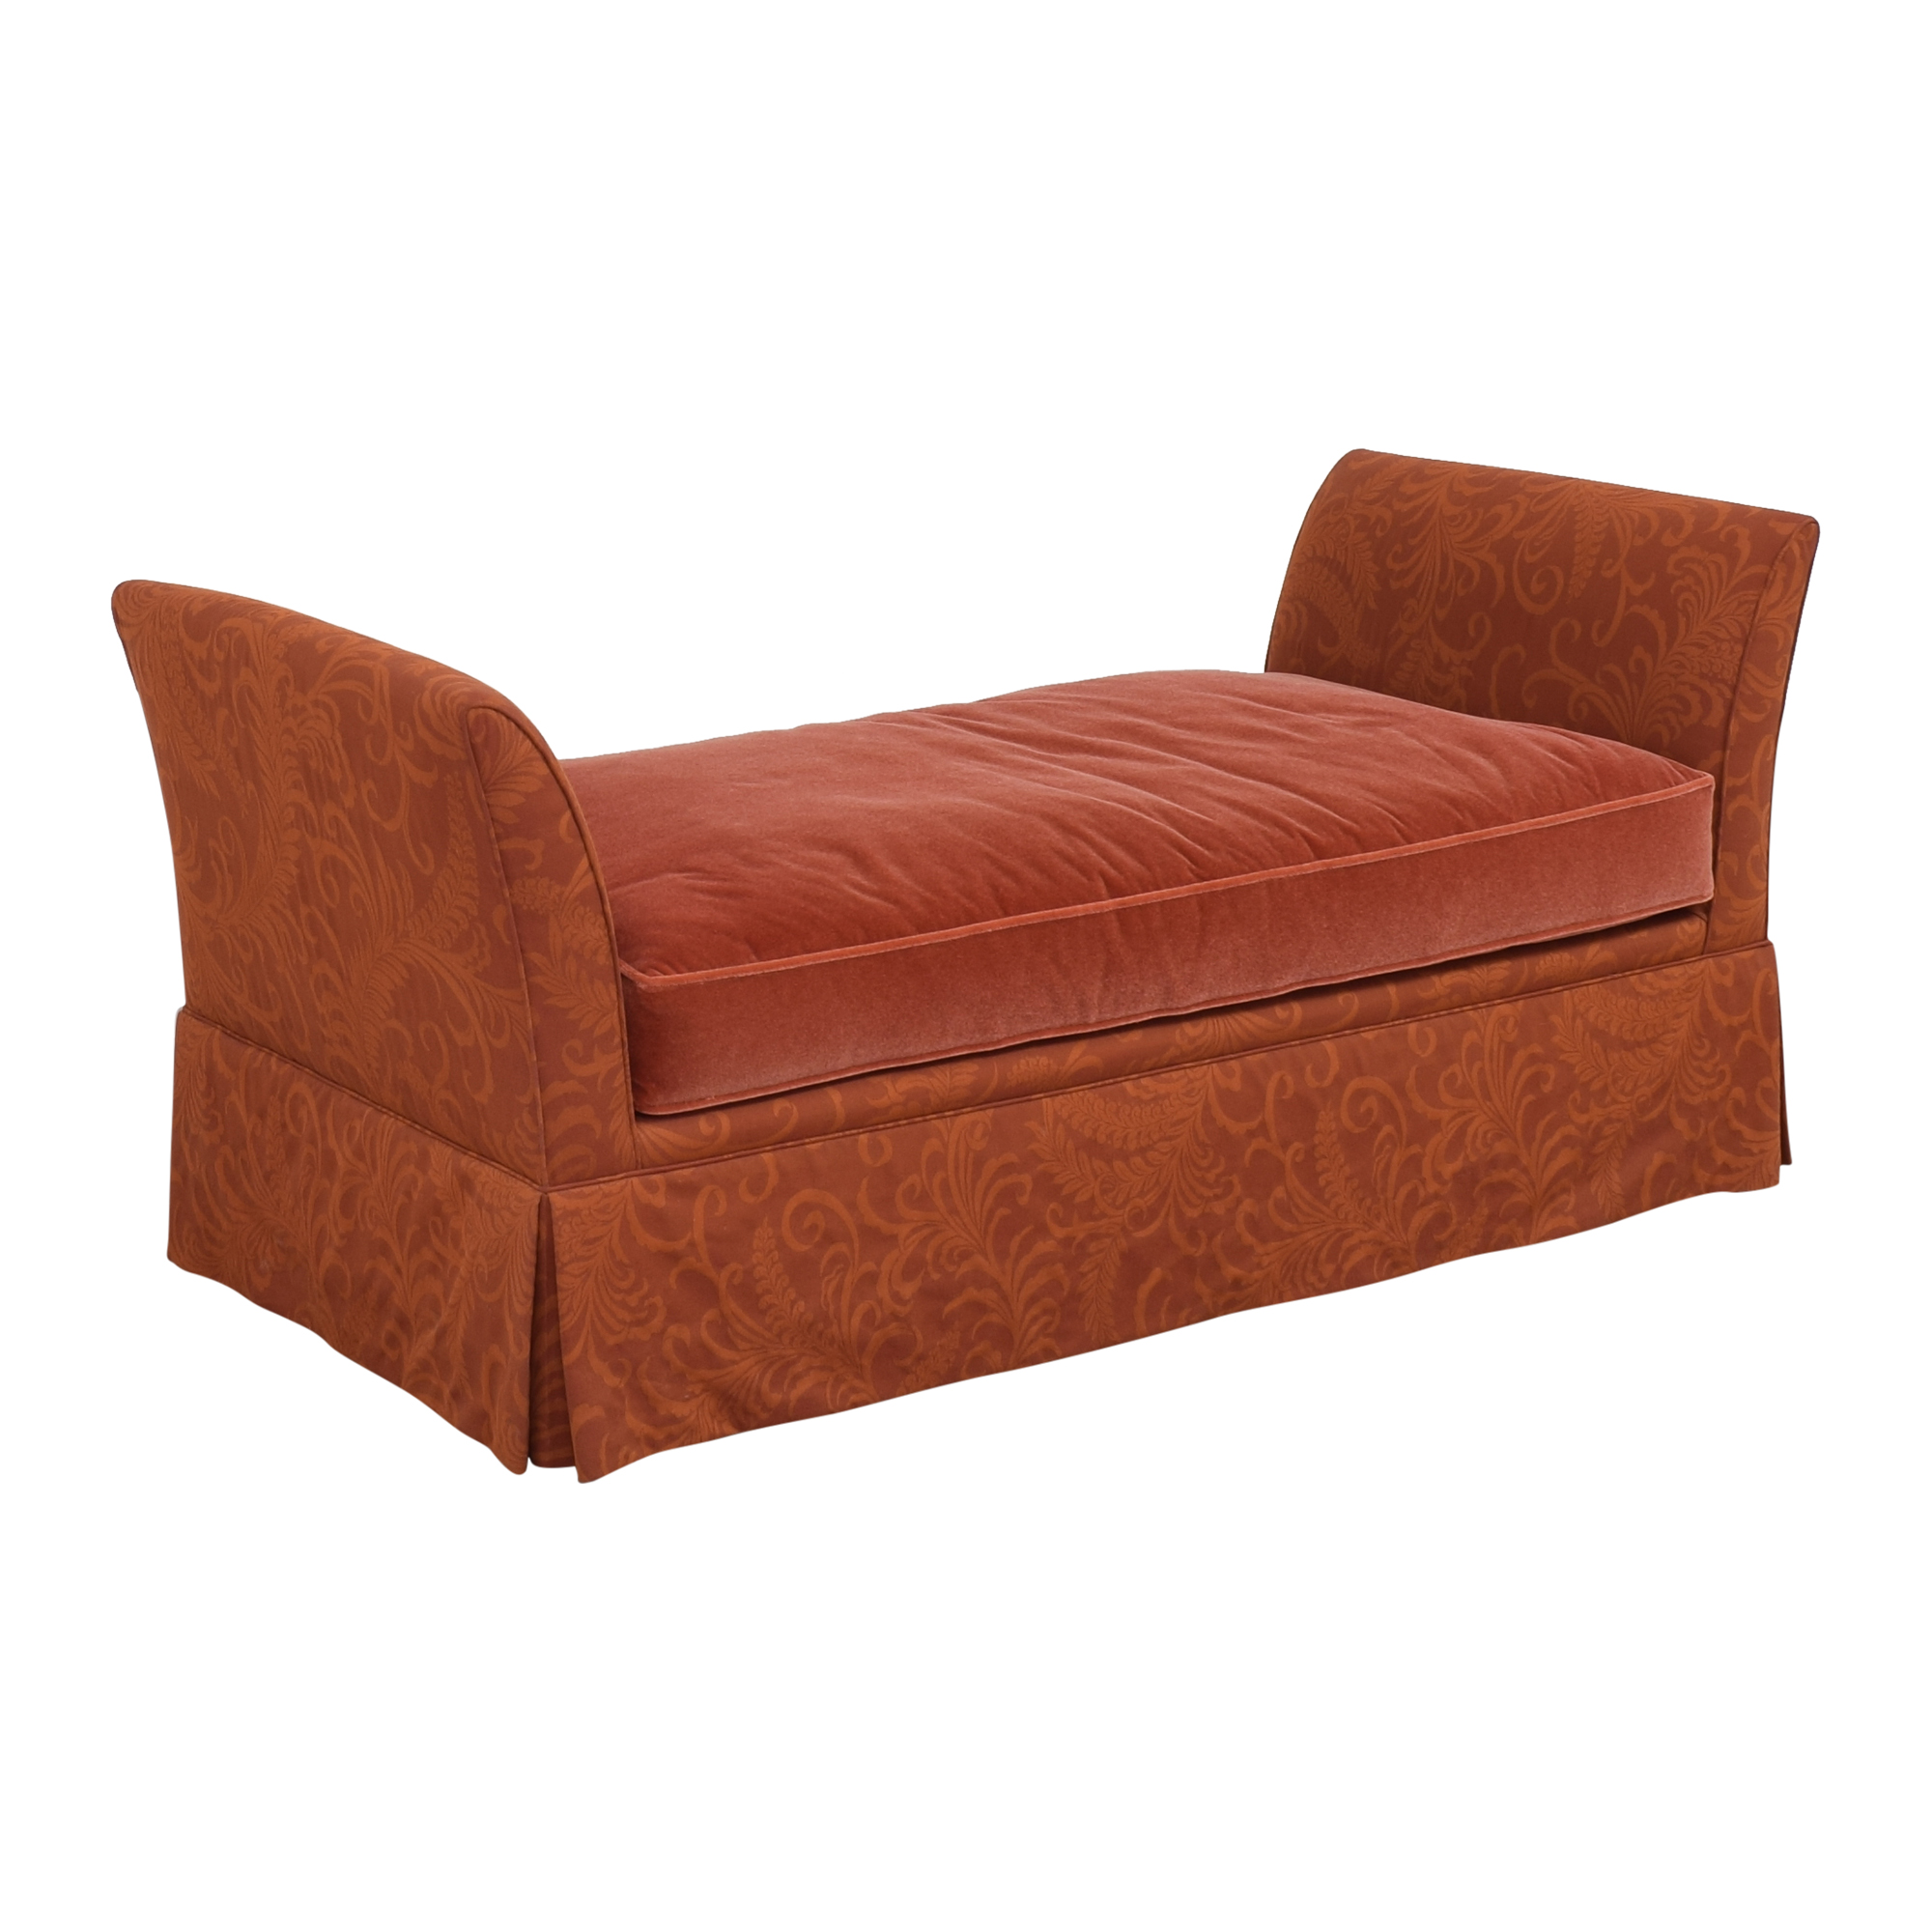 buy Lee Industries Skirted Daybed with Pillows Lee Industries Chaises